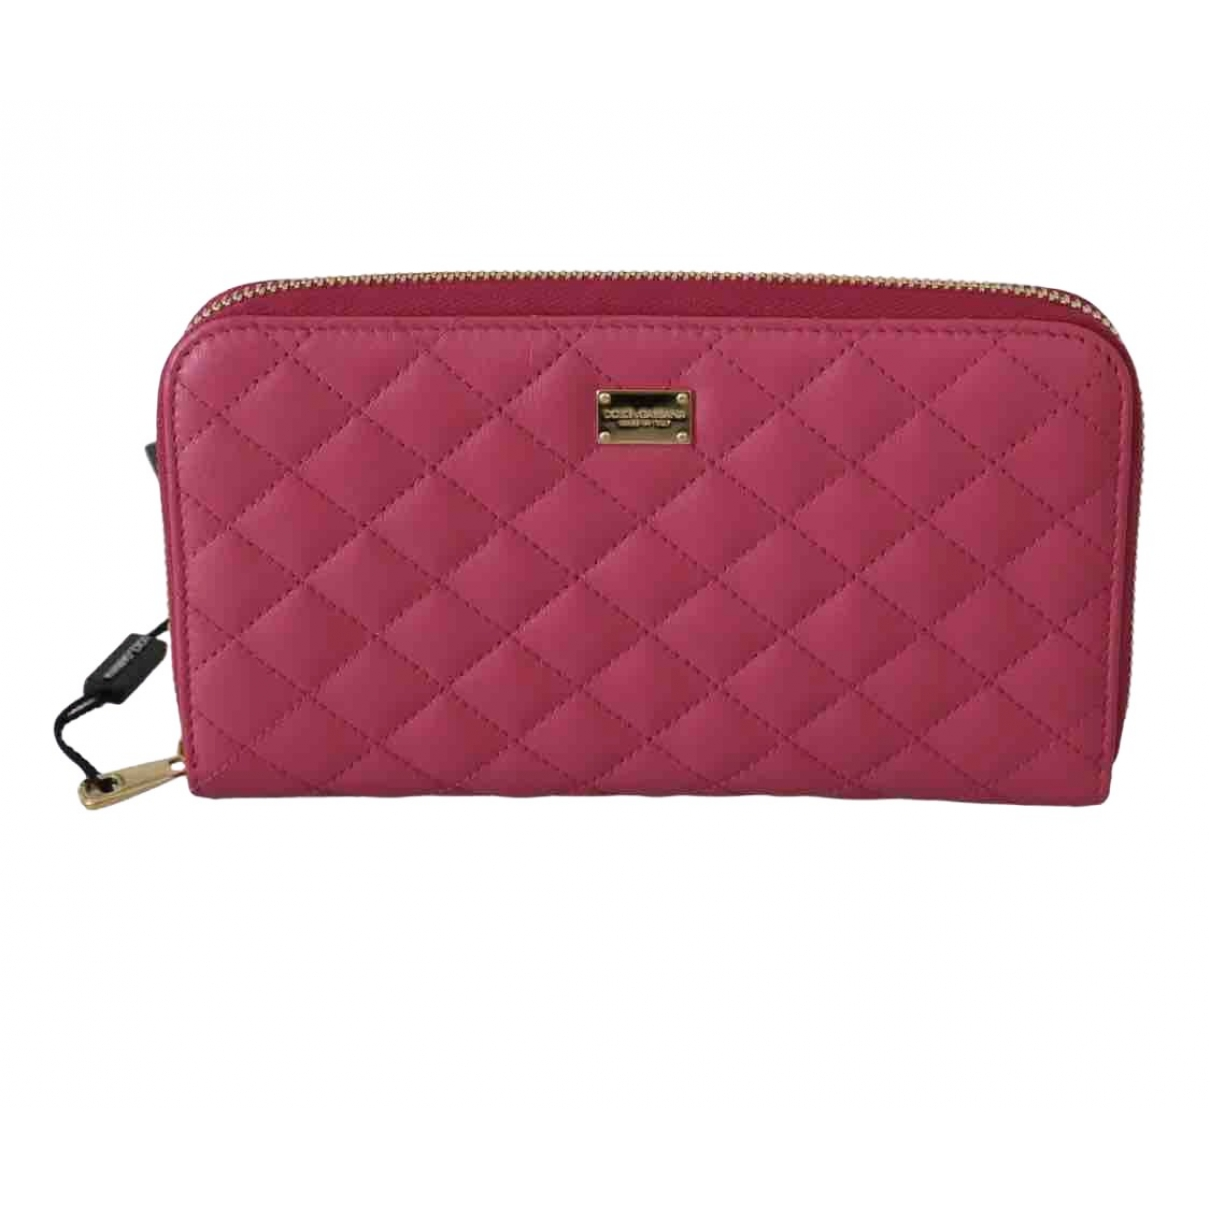 Dolce & Gabbana \N Pink Leather wallet for Women \N